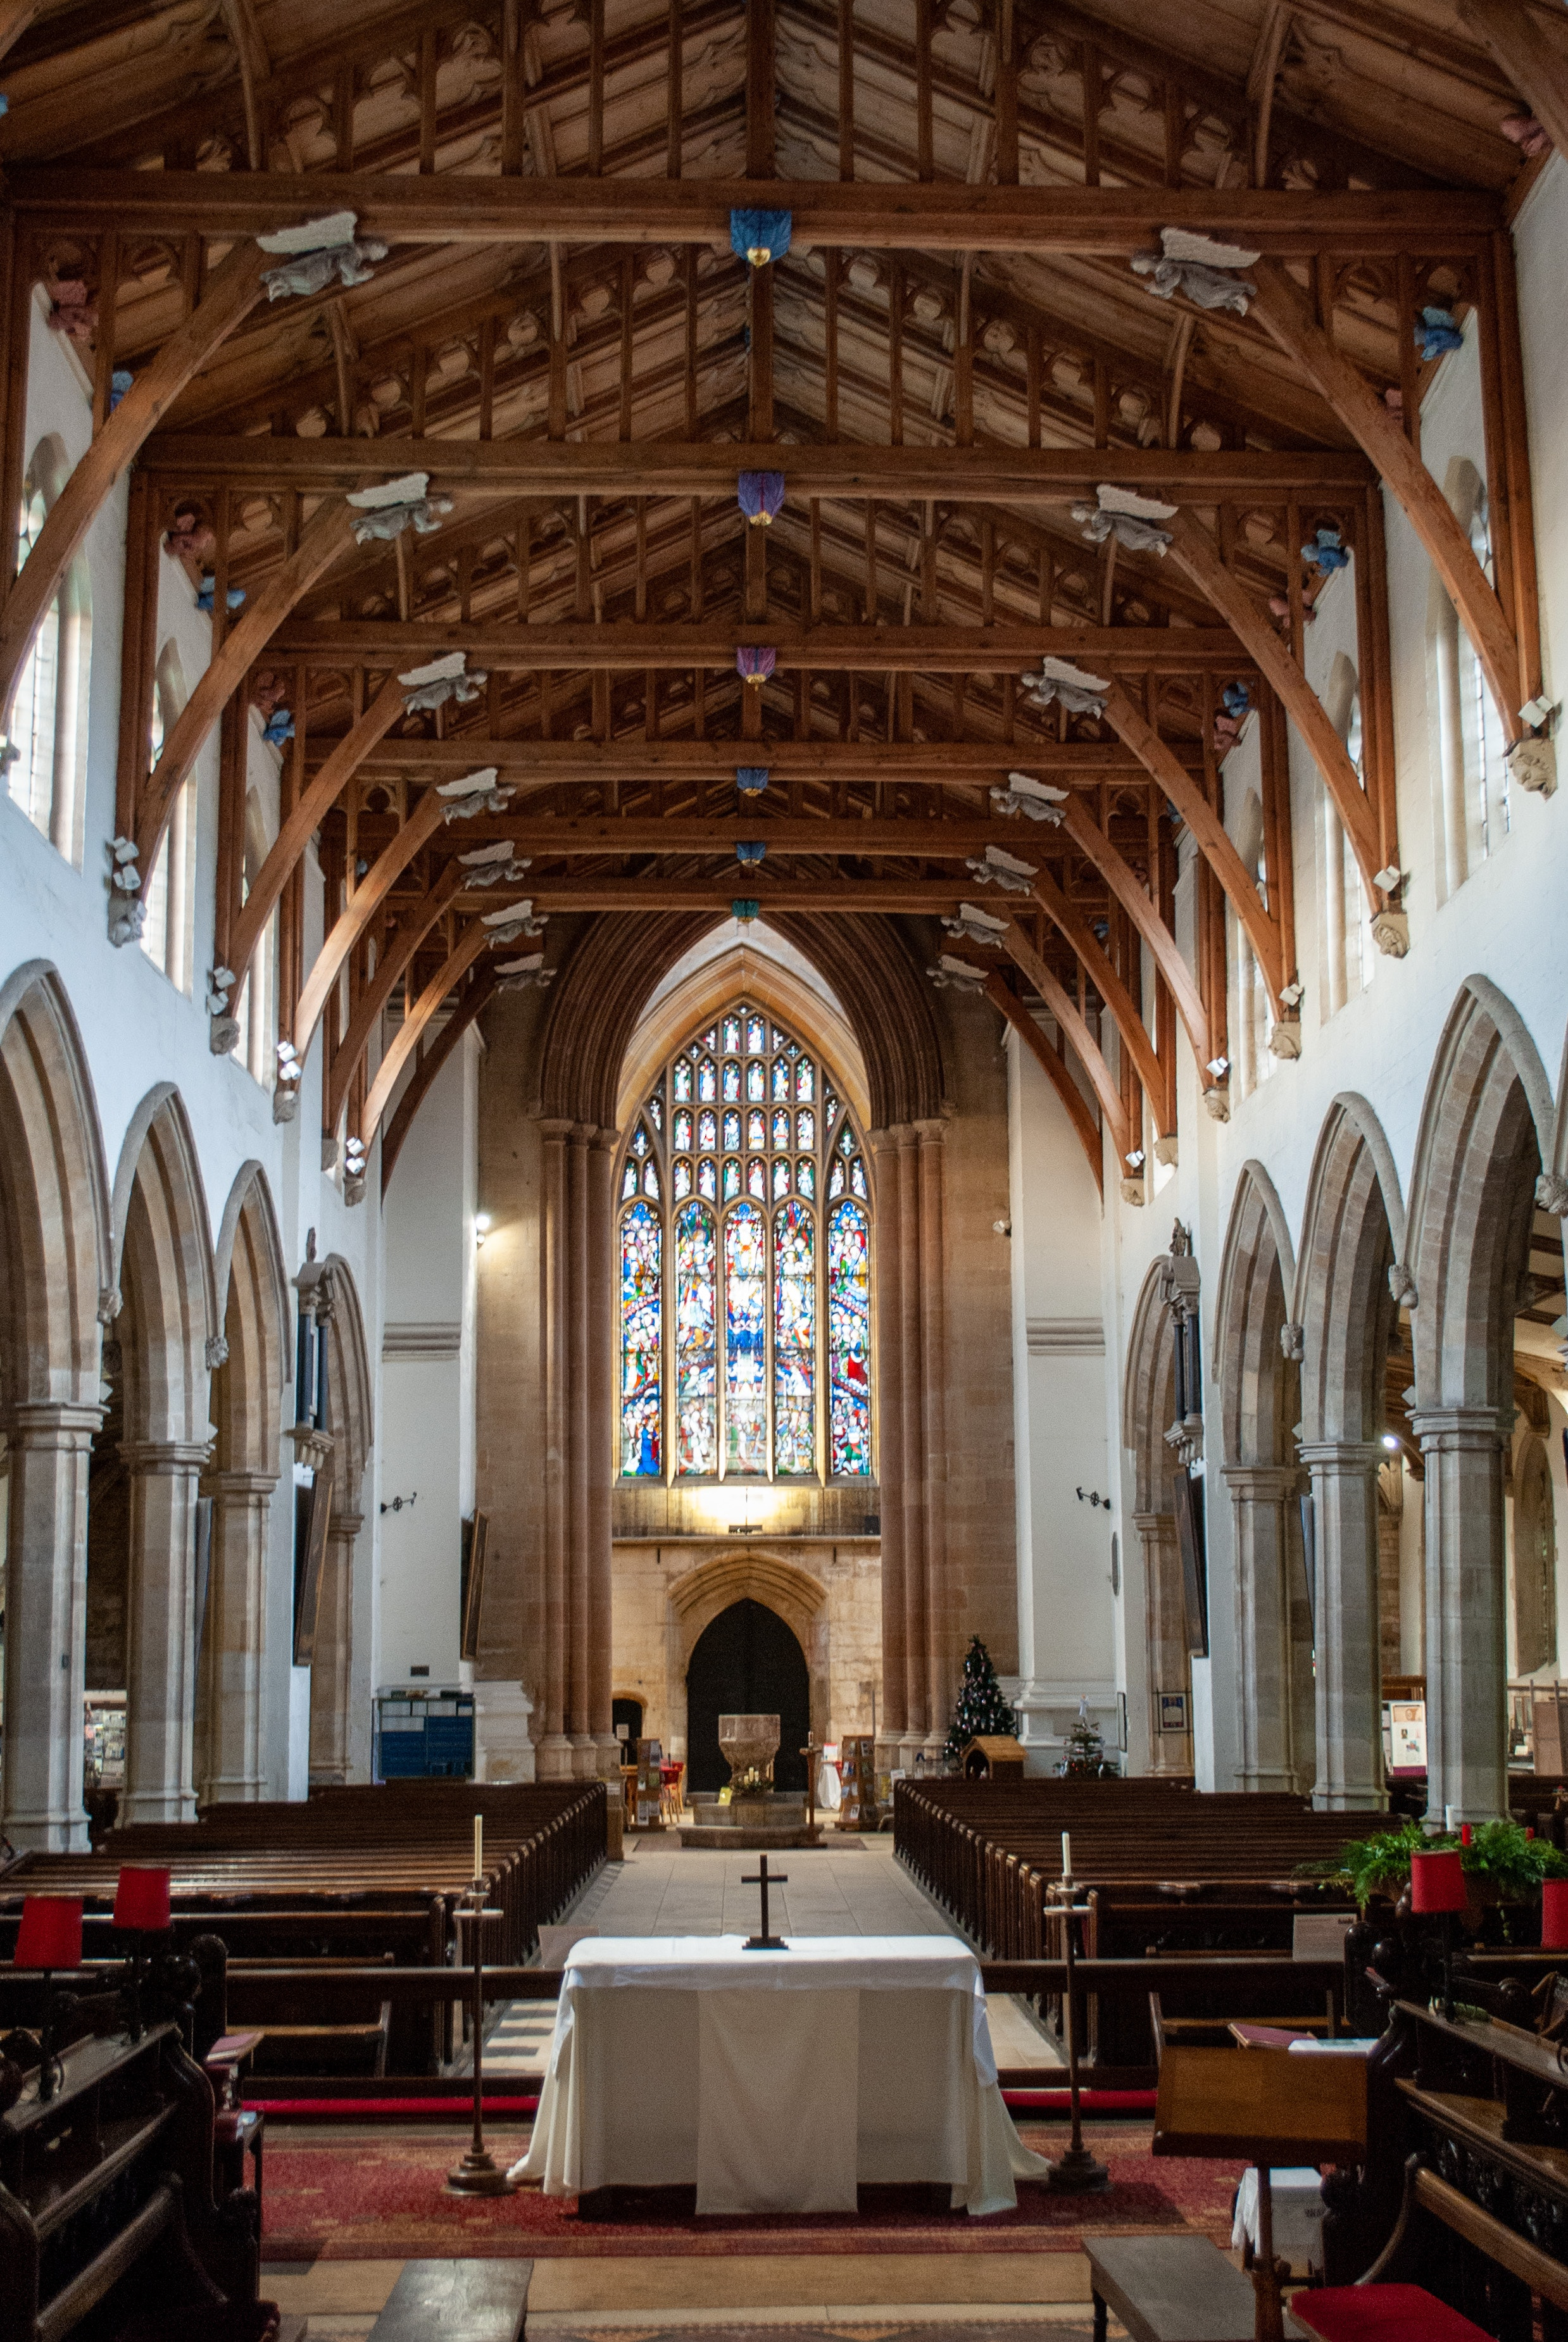 brown-and-white-cathedral-interior-3661397